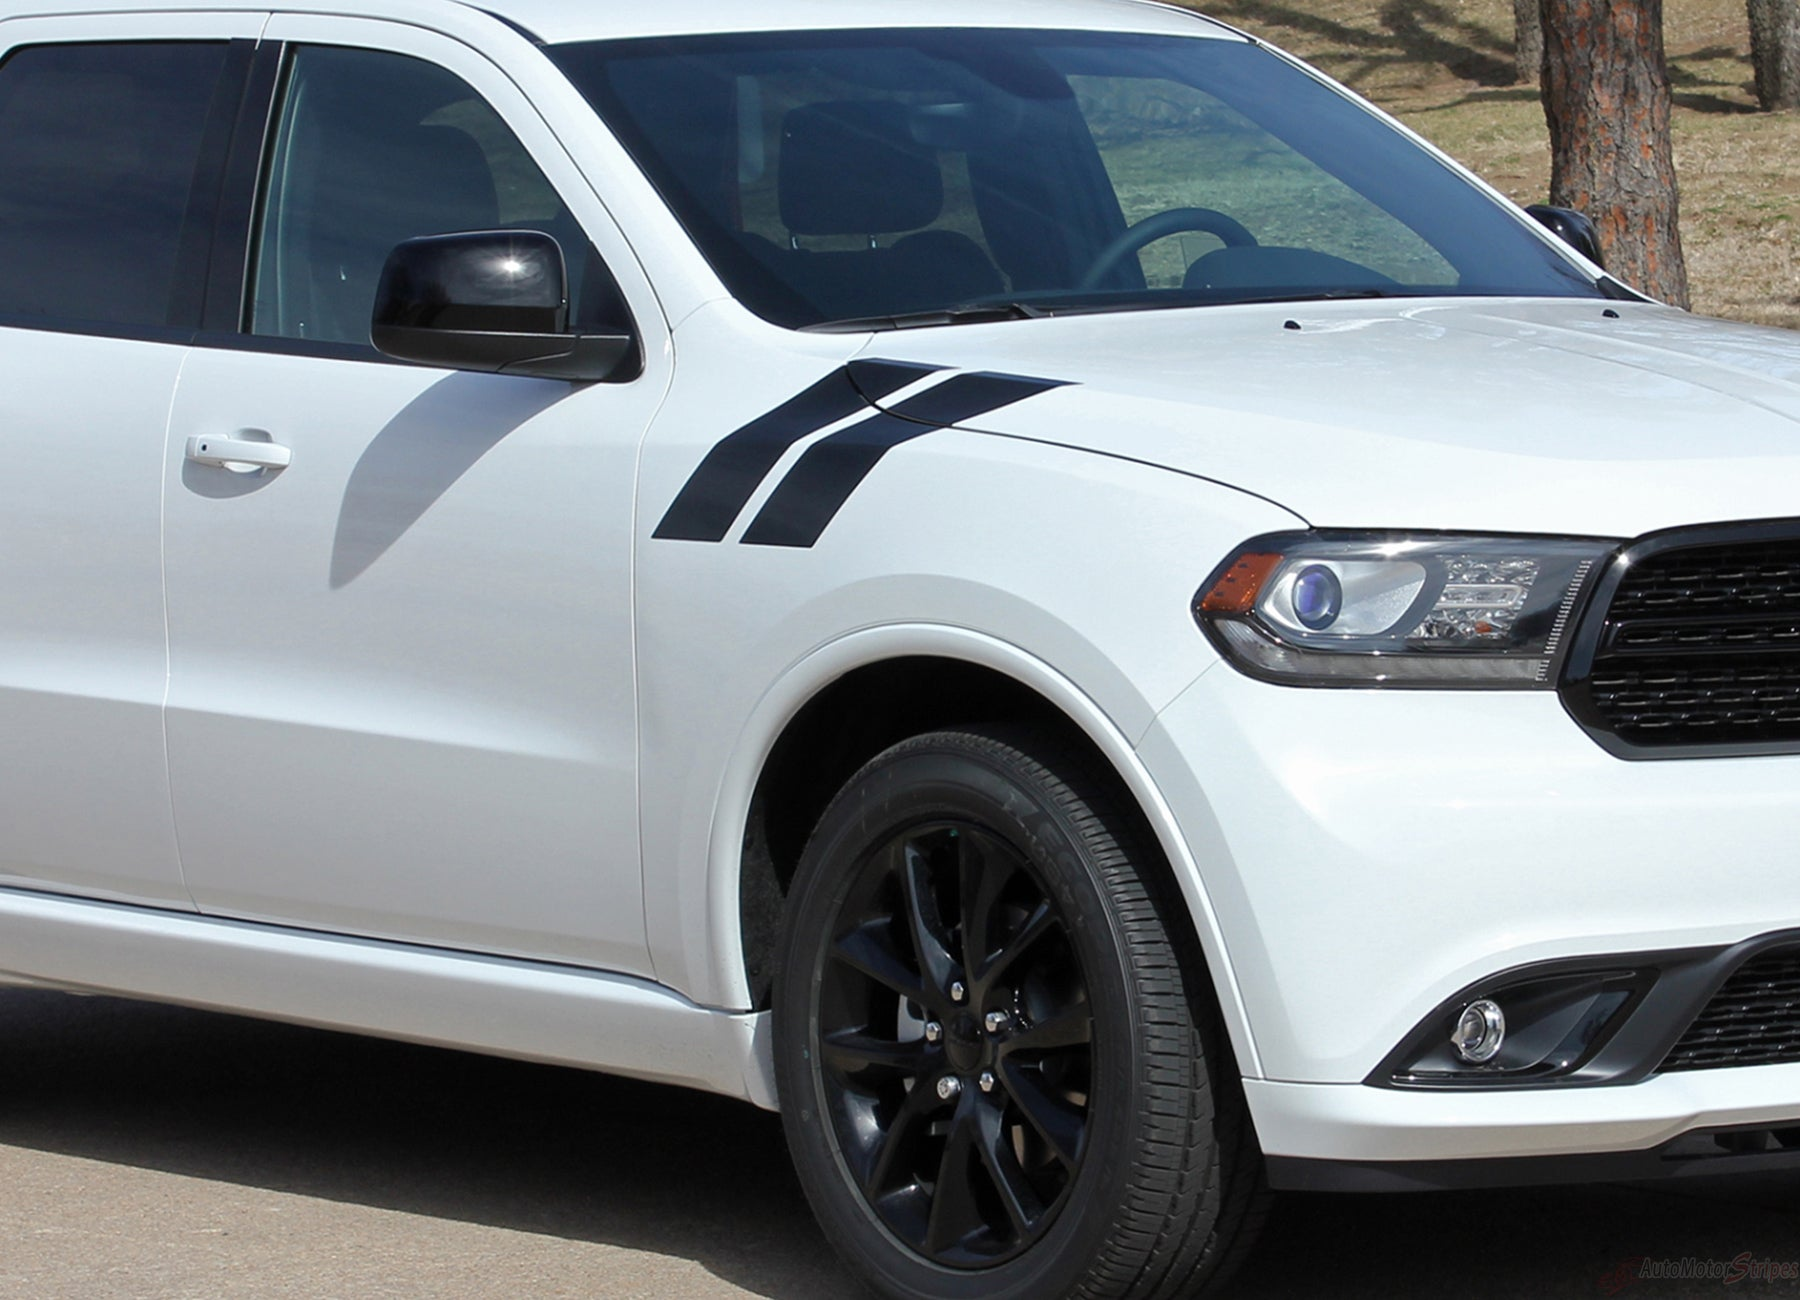 2011 2020 Dodge Durango Hood Stripes Hash Marks Double Bar Suv Decals Auto Motor Stripes Decals Vinyl Graphics And 3m Striping Kits